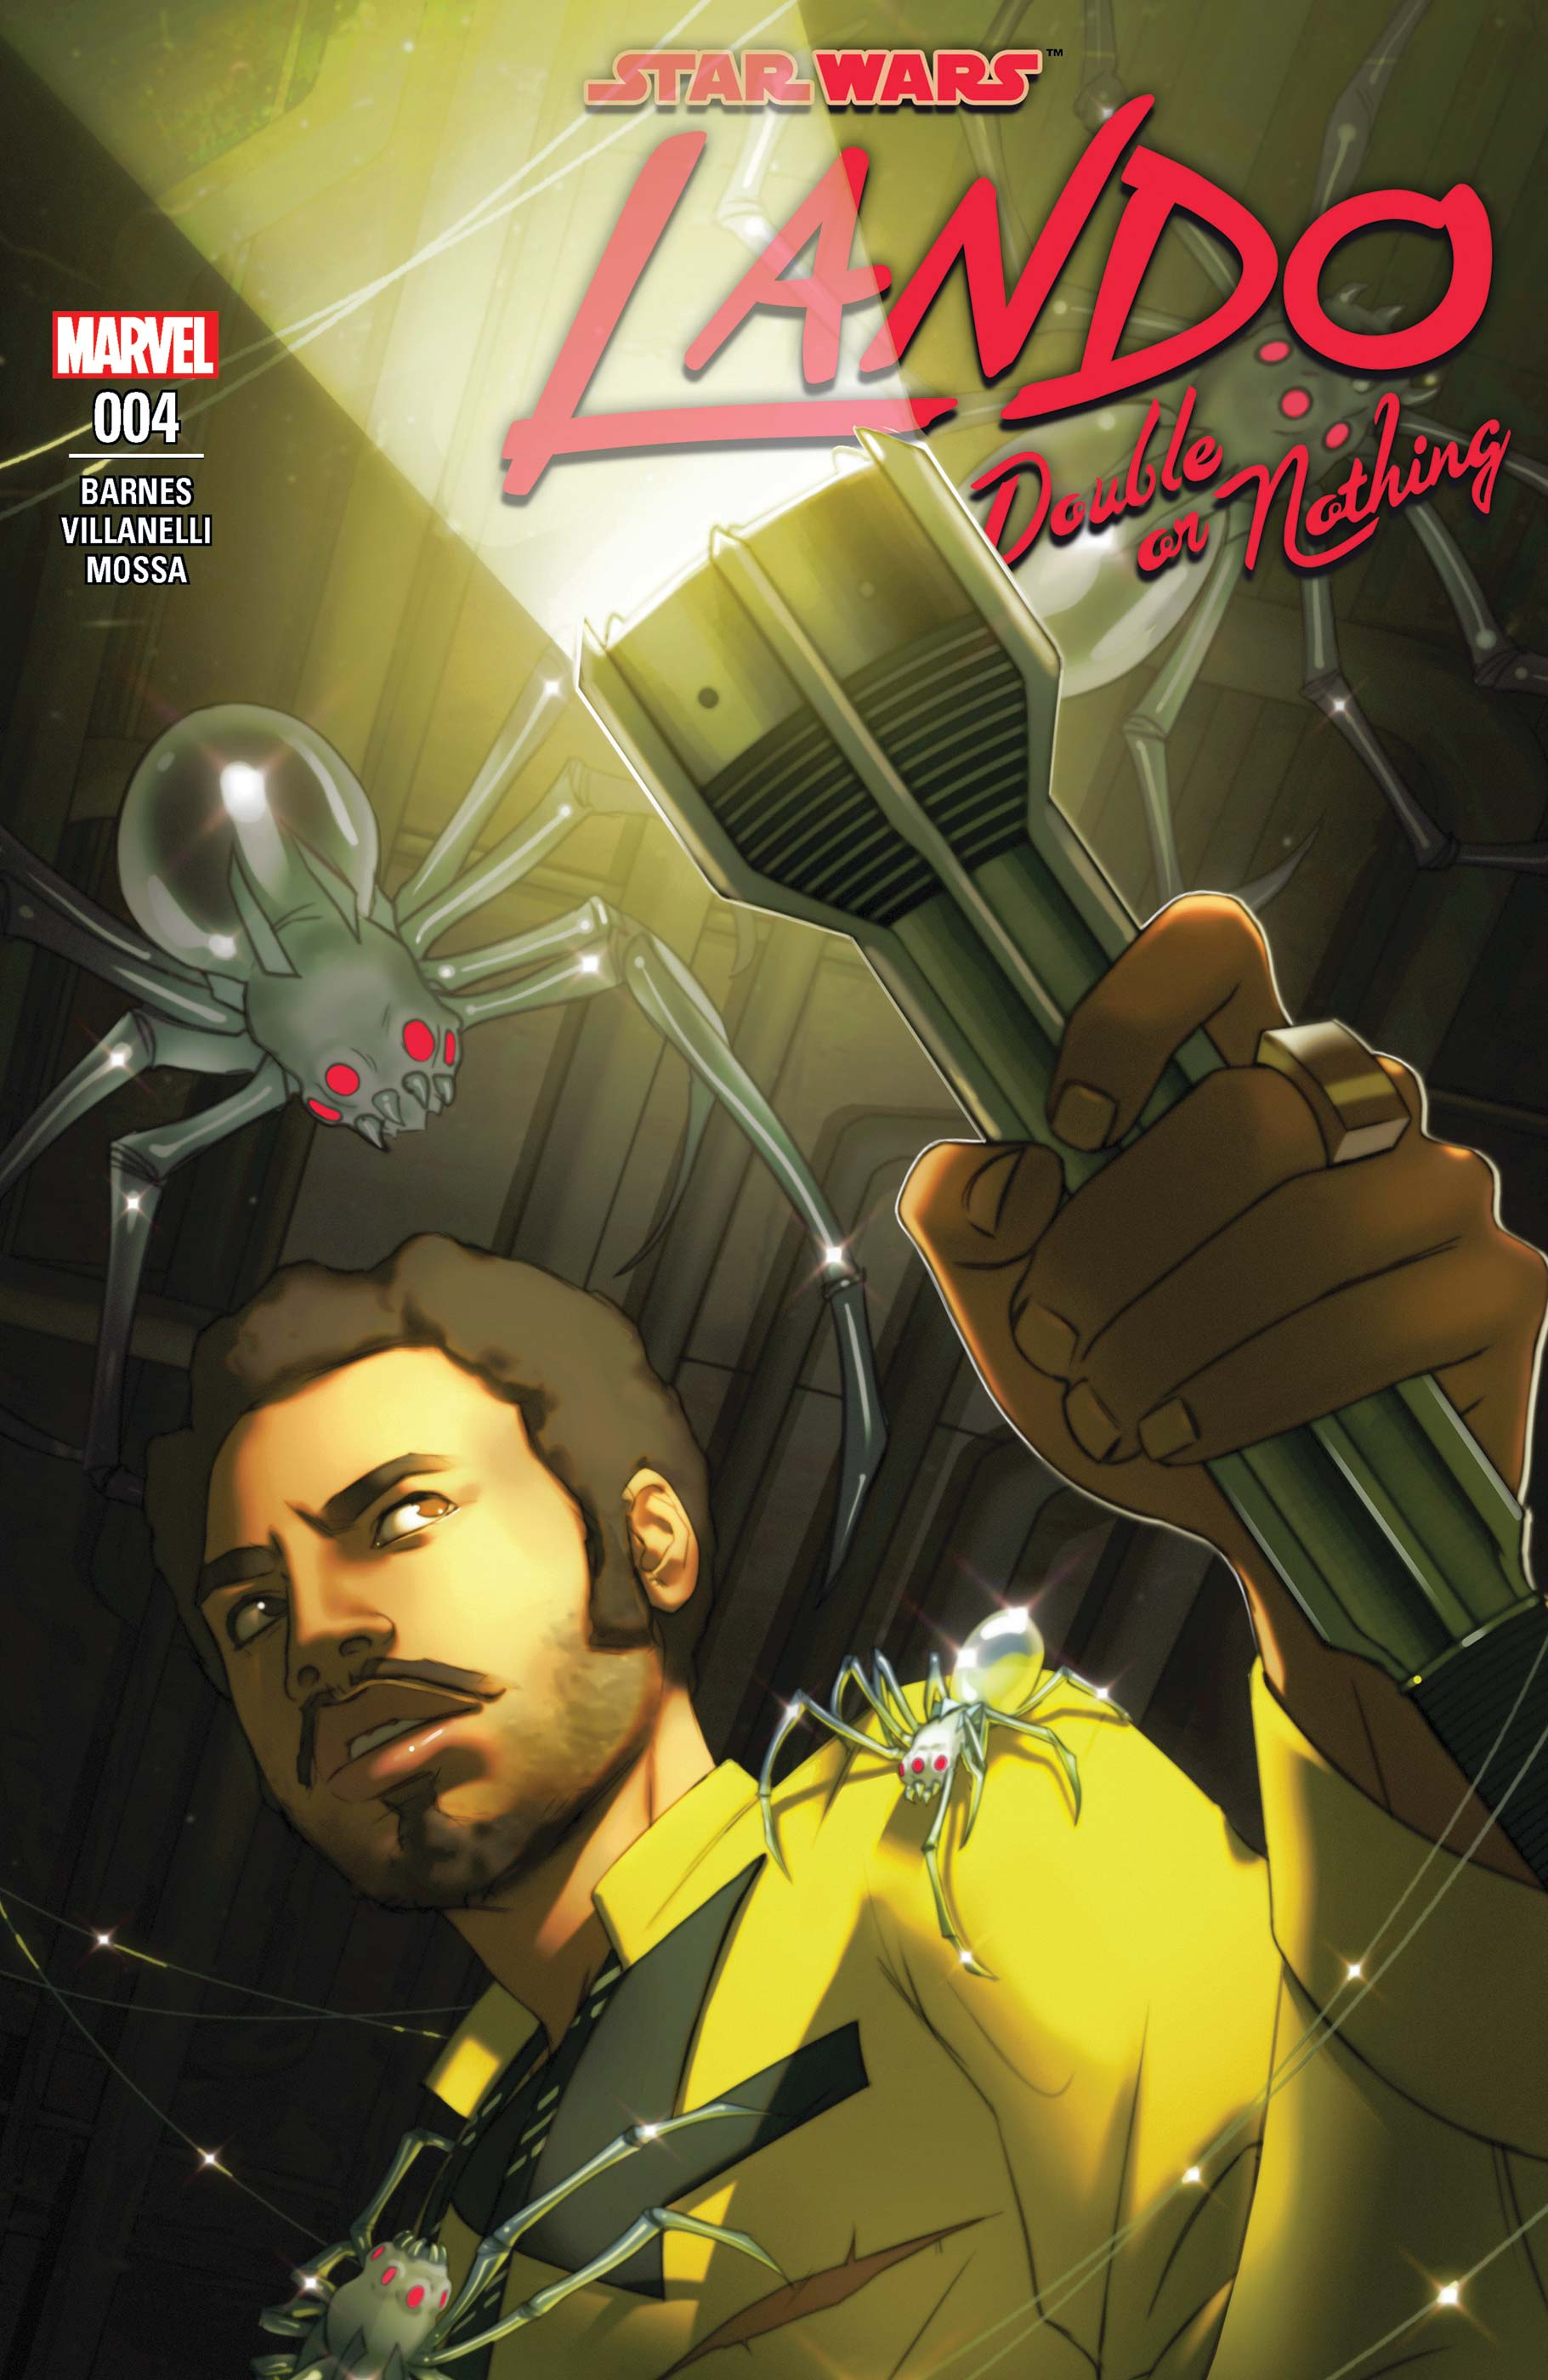 Star Wars: Lando - Double or Nothing (2018) #4